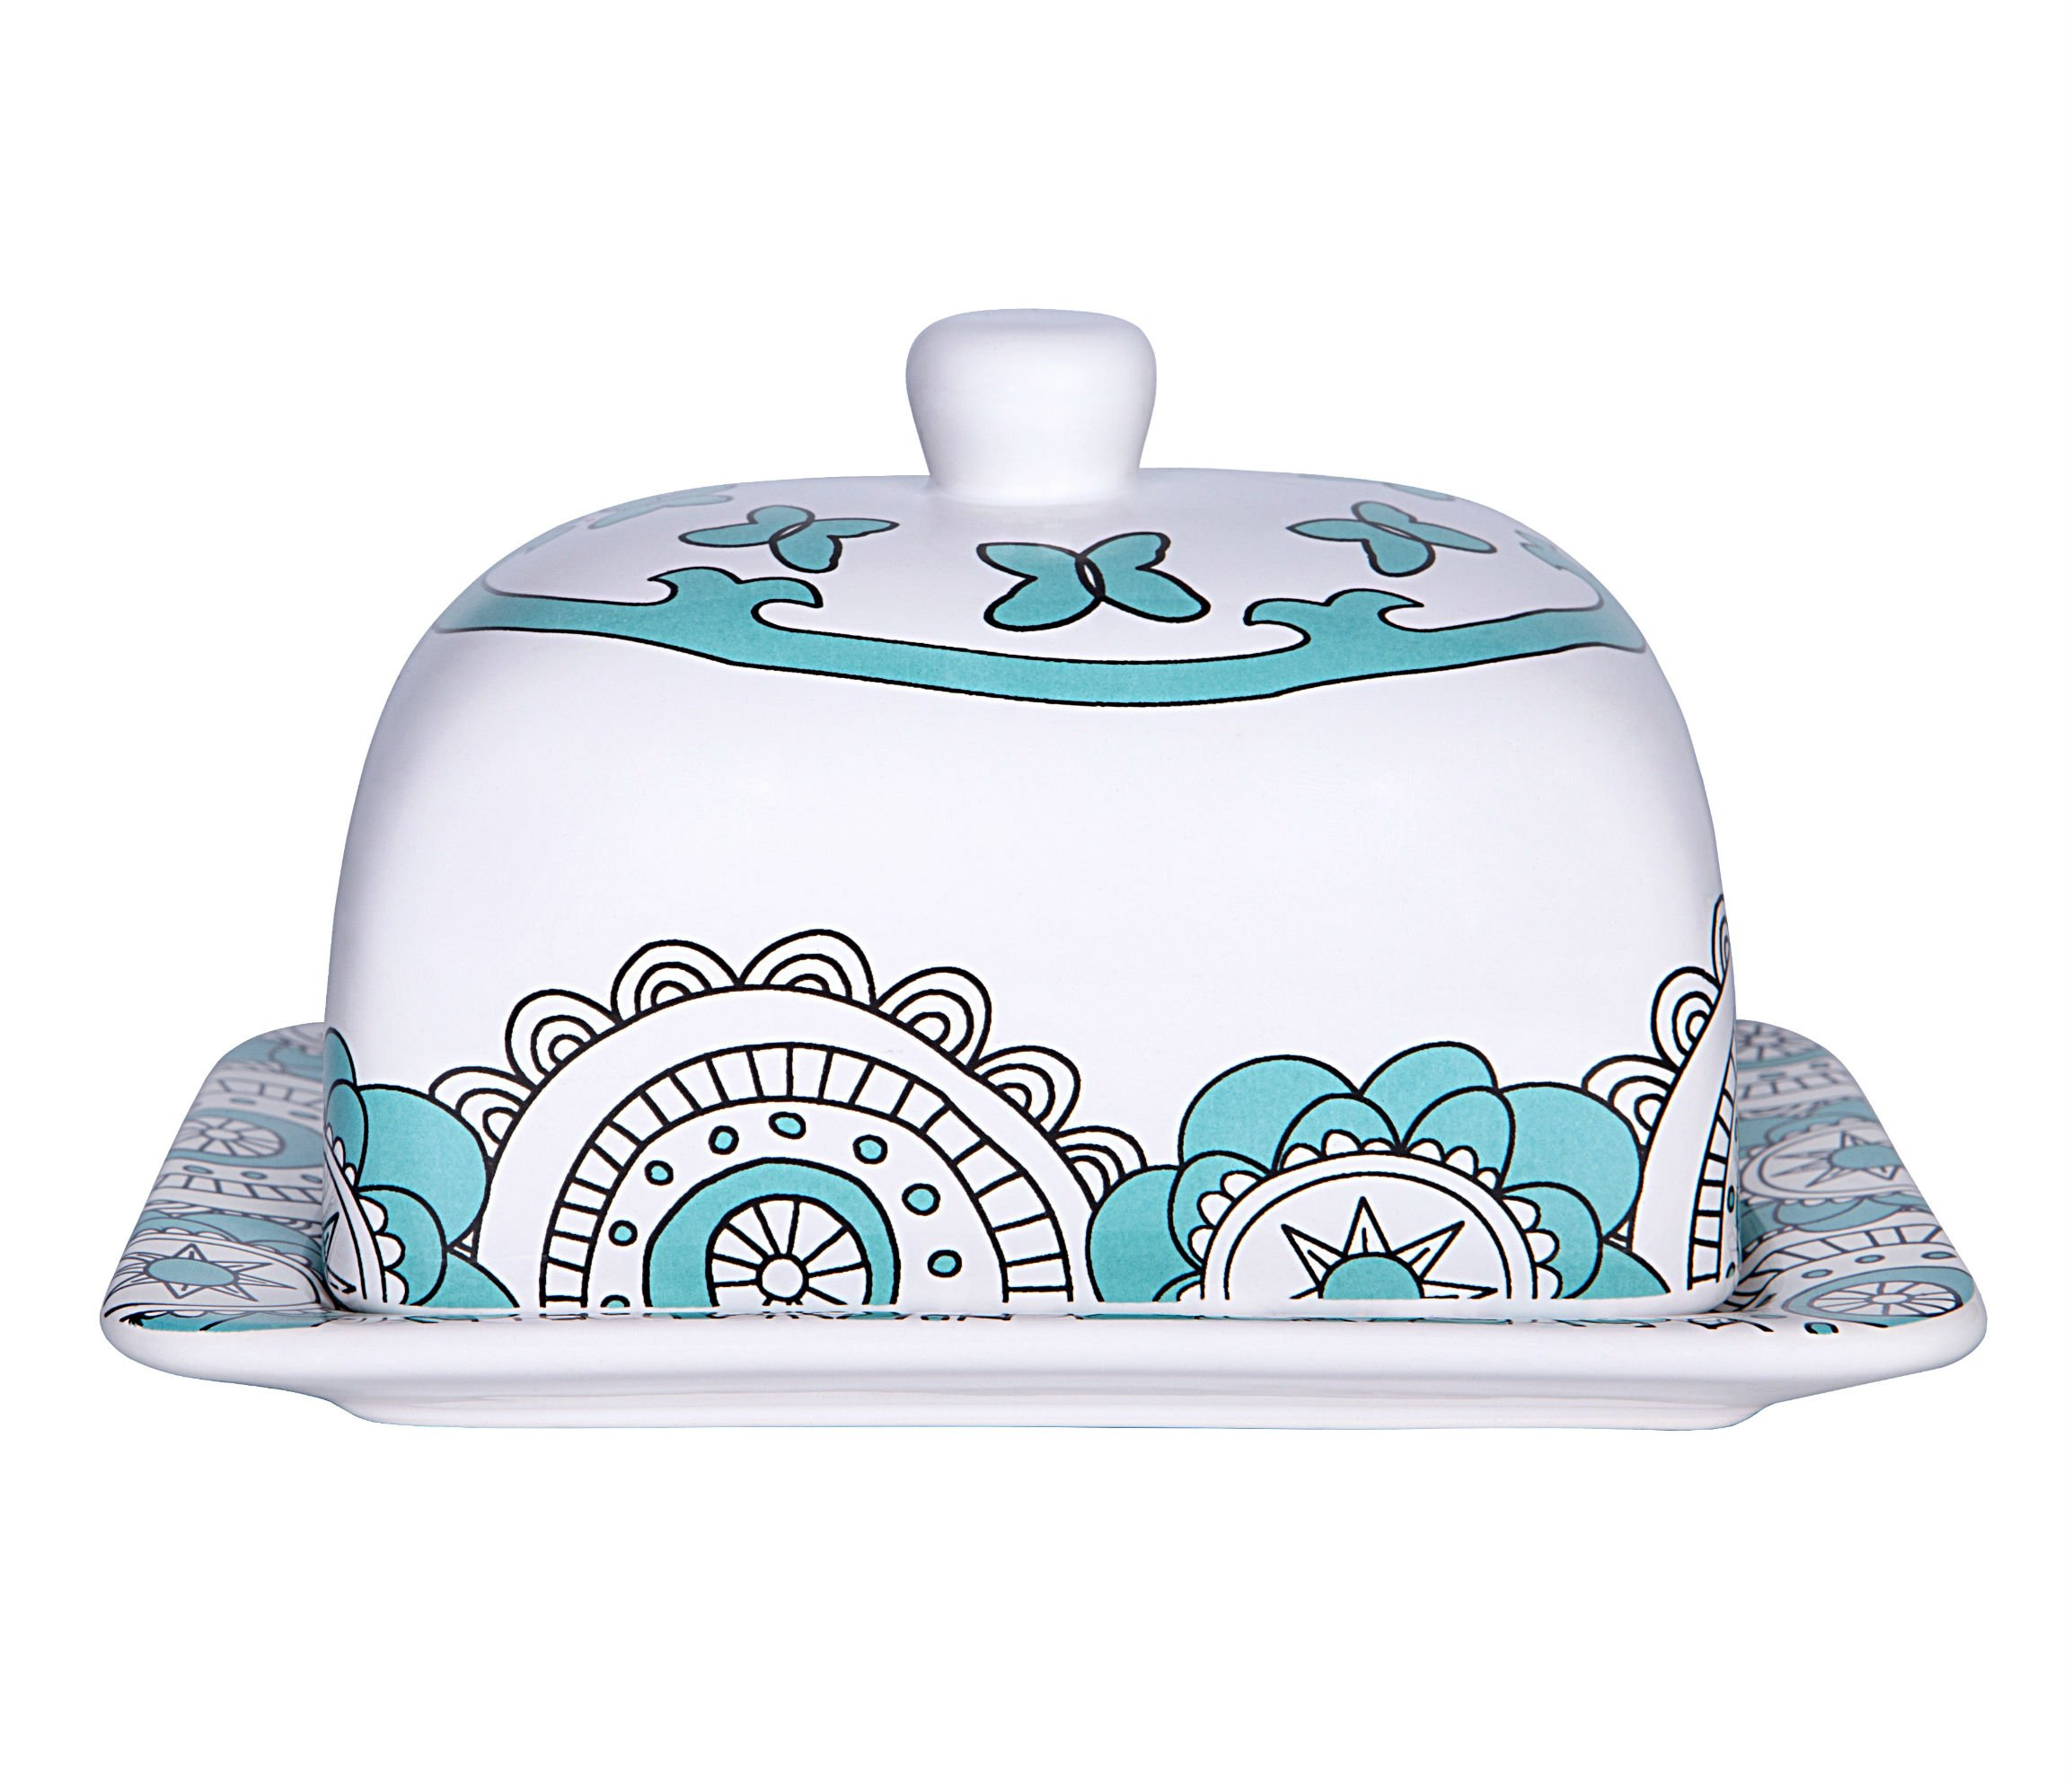 Butter Dish Keeper Large with Lid Cover, 7 Inch Porcelain, Holds Up to 2 Sticks of Butter, Mint Blue